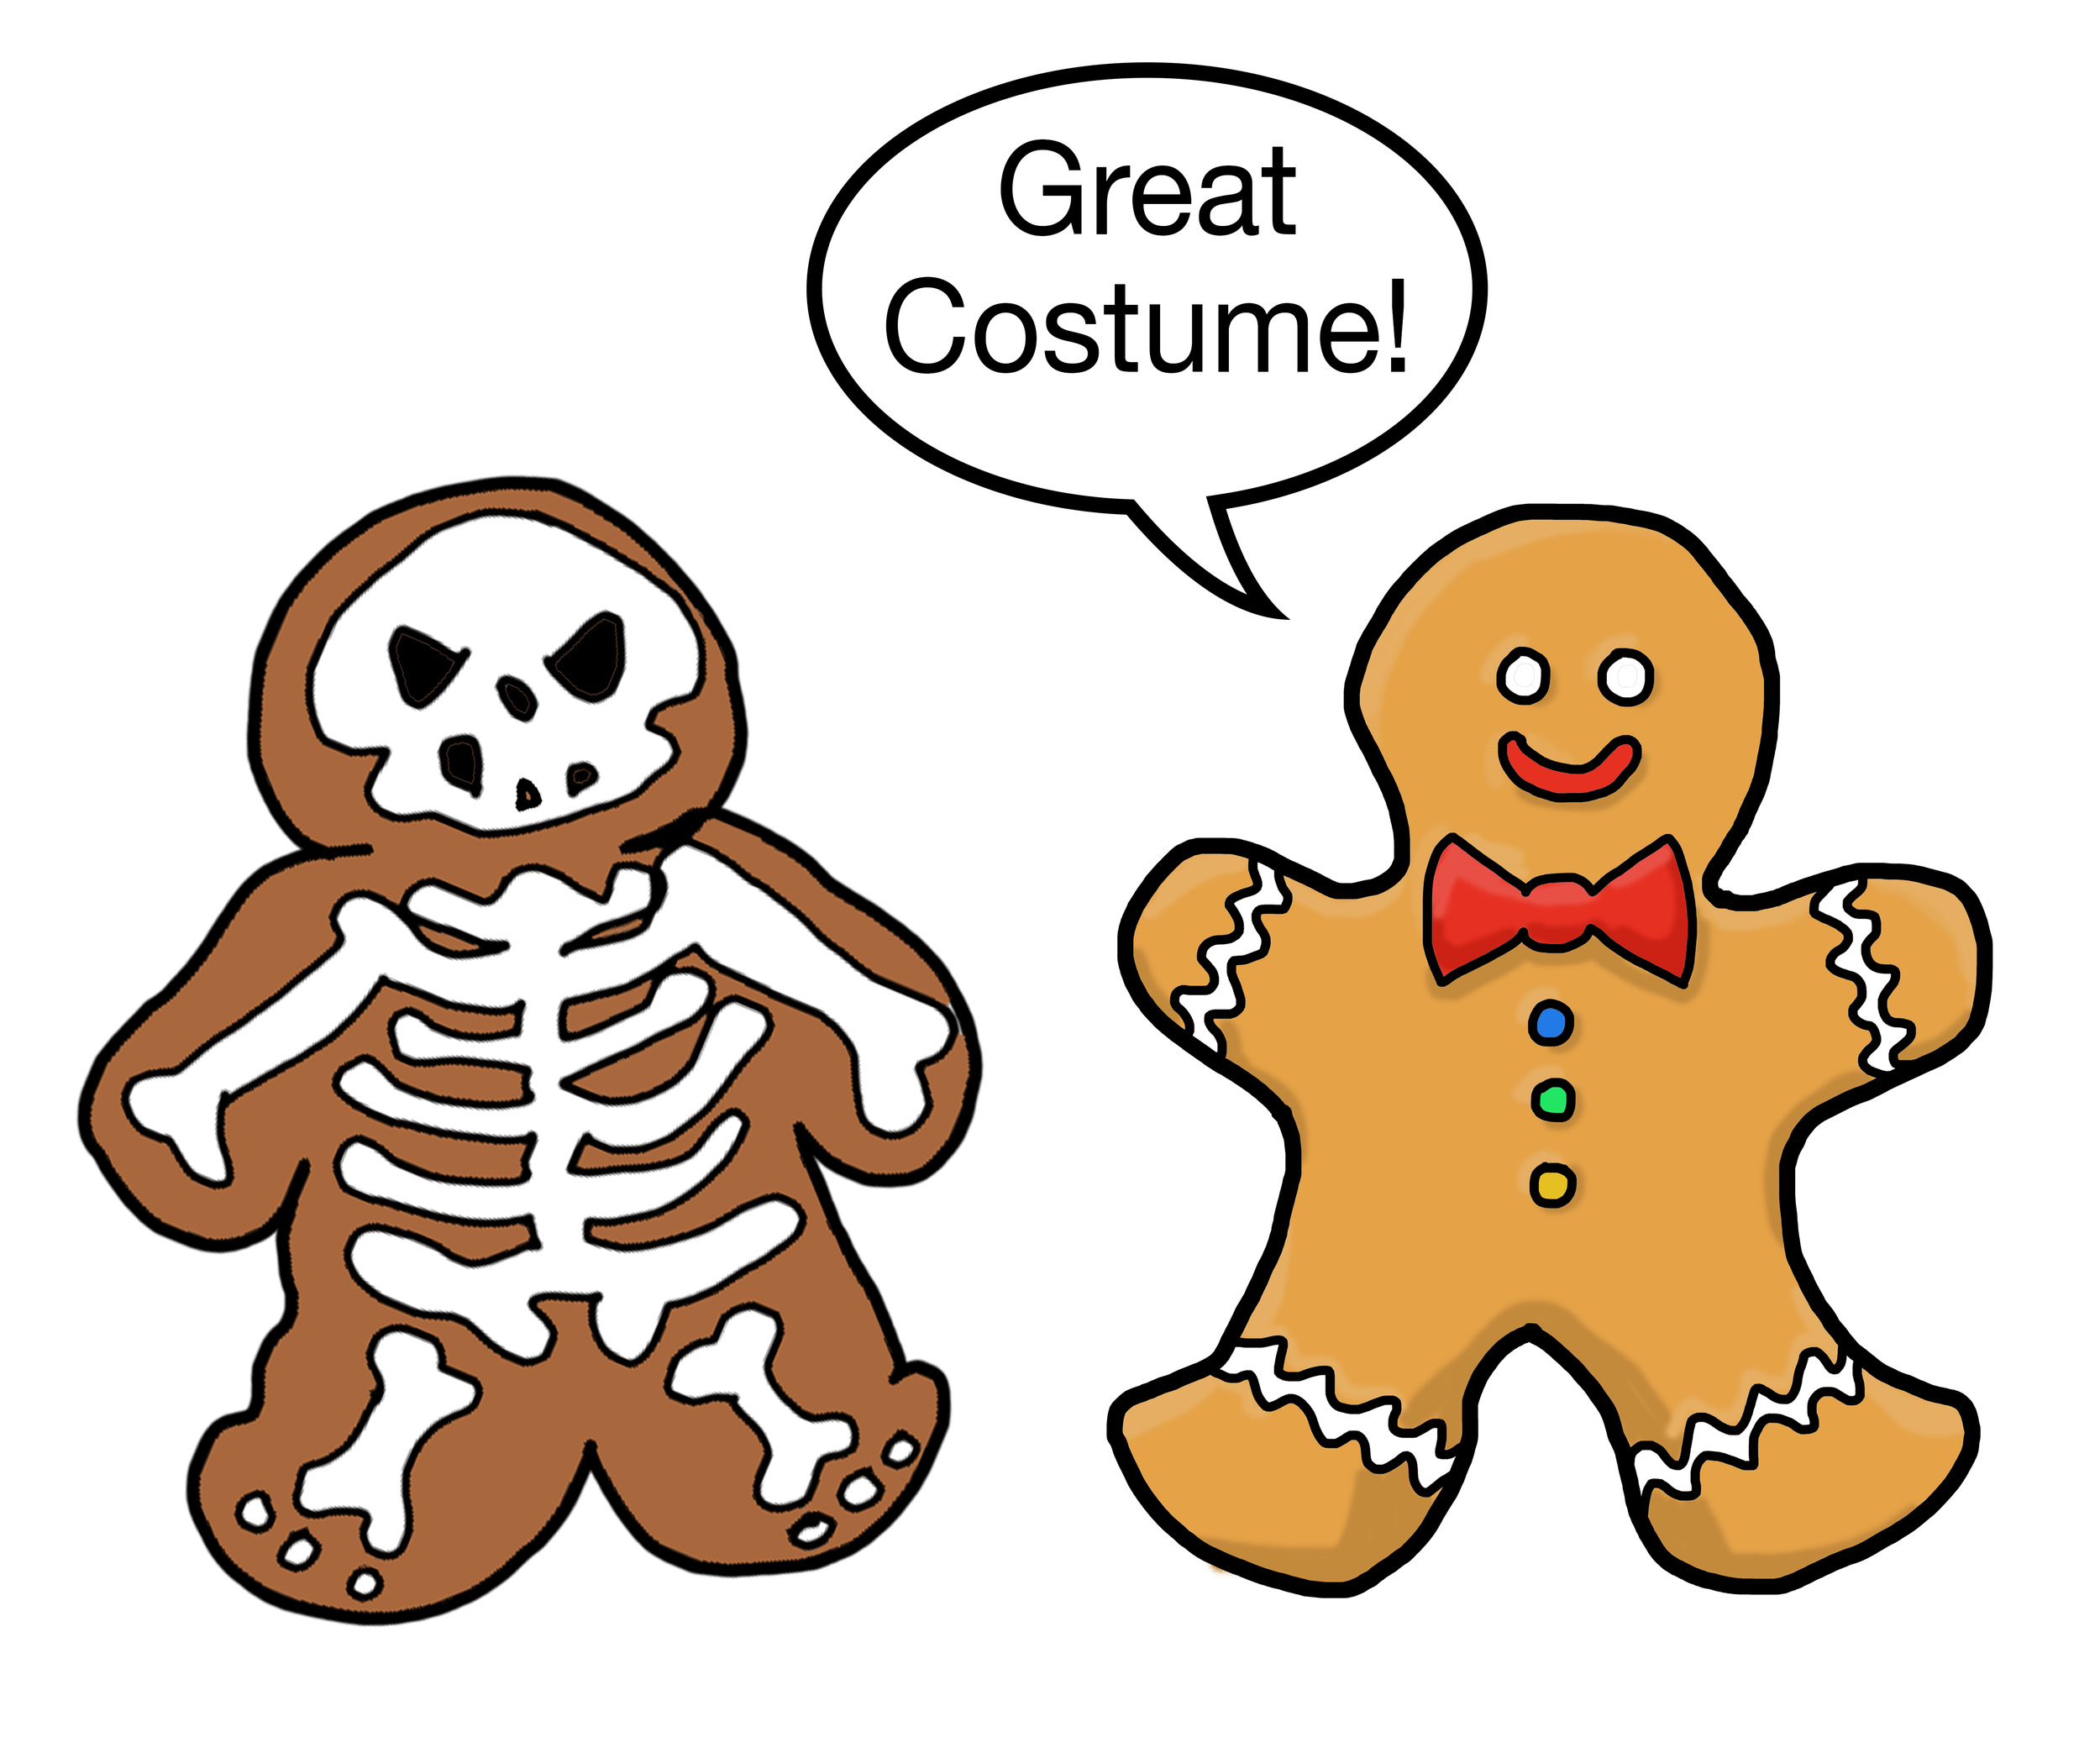 Halloween designed tshirt with gingerbread men in costume